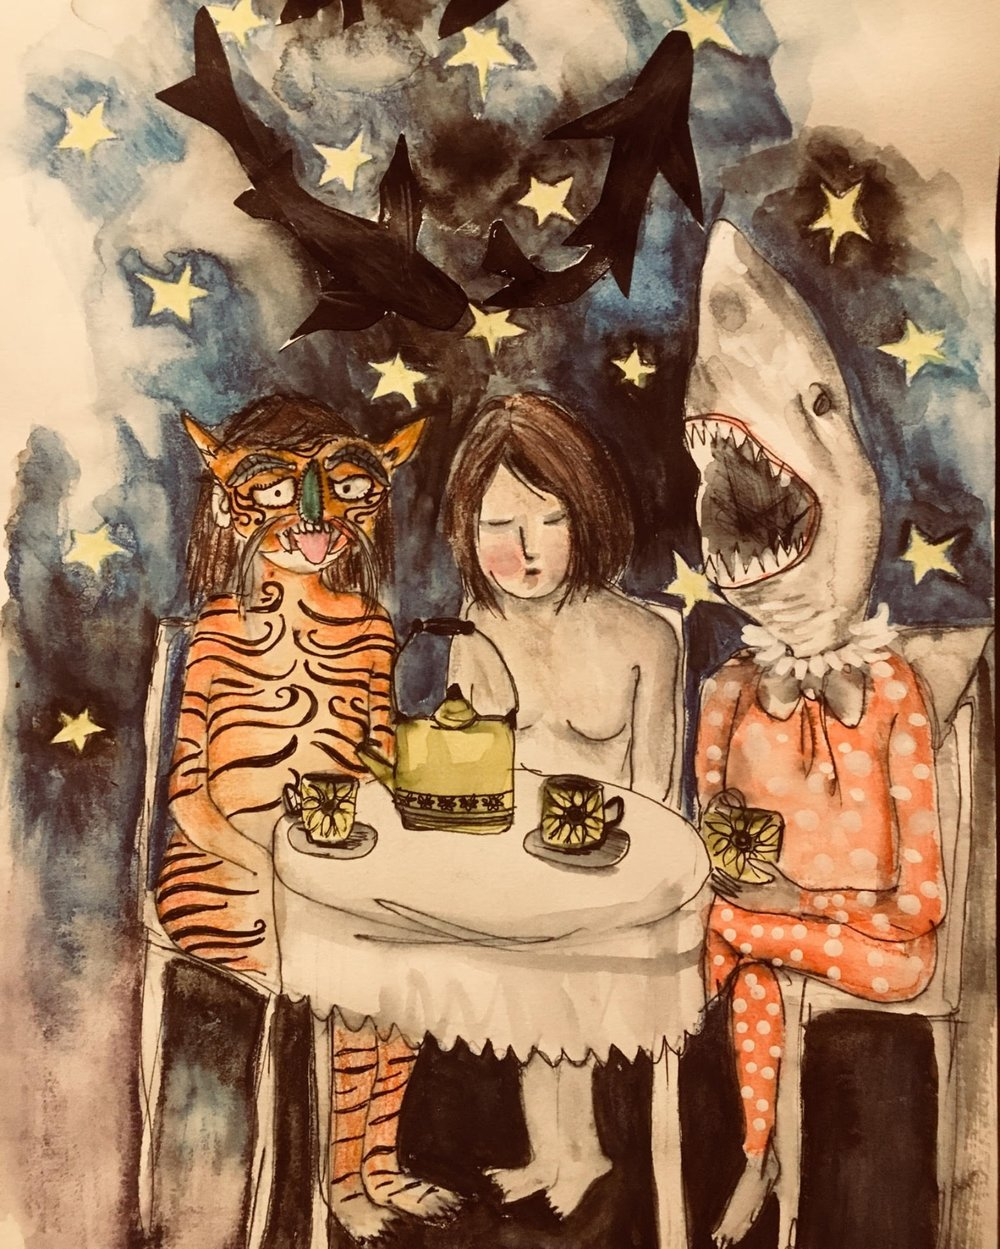 Tiger, Shark and Me Sit Down for Tea by Emma Haddow   'I've struggled with anxiety and depression since I was a teenager. There have been times when it has crippled me, and I was afraid of everything. I started to face my fears, my demons head on and I still do. It's scary in the dark but what's more scary to me is denying and suppressing what lurks beneath the surface. My mental health is good these days. My dark days are still here, but I no longer turn them away.'  Photograph: Emma Haddow/the Perspective Project